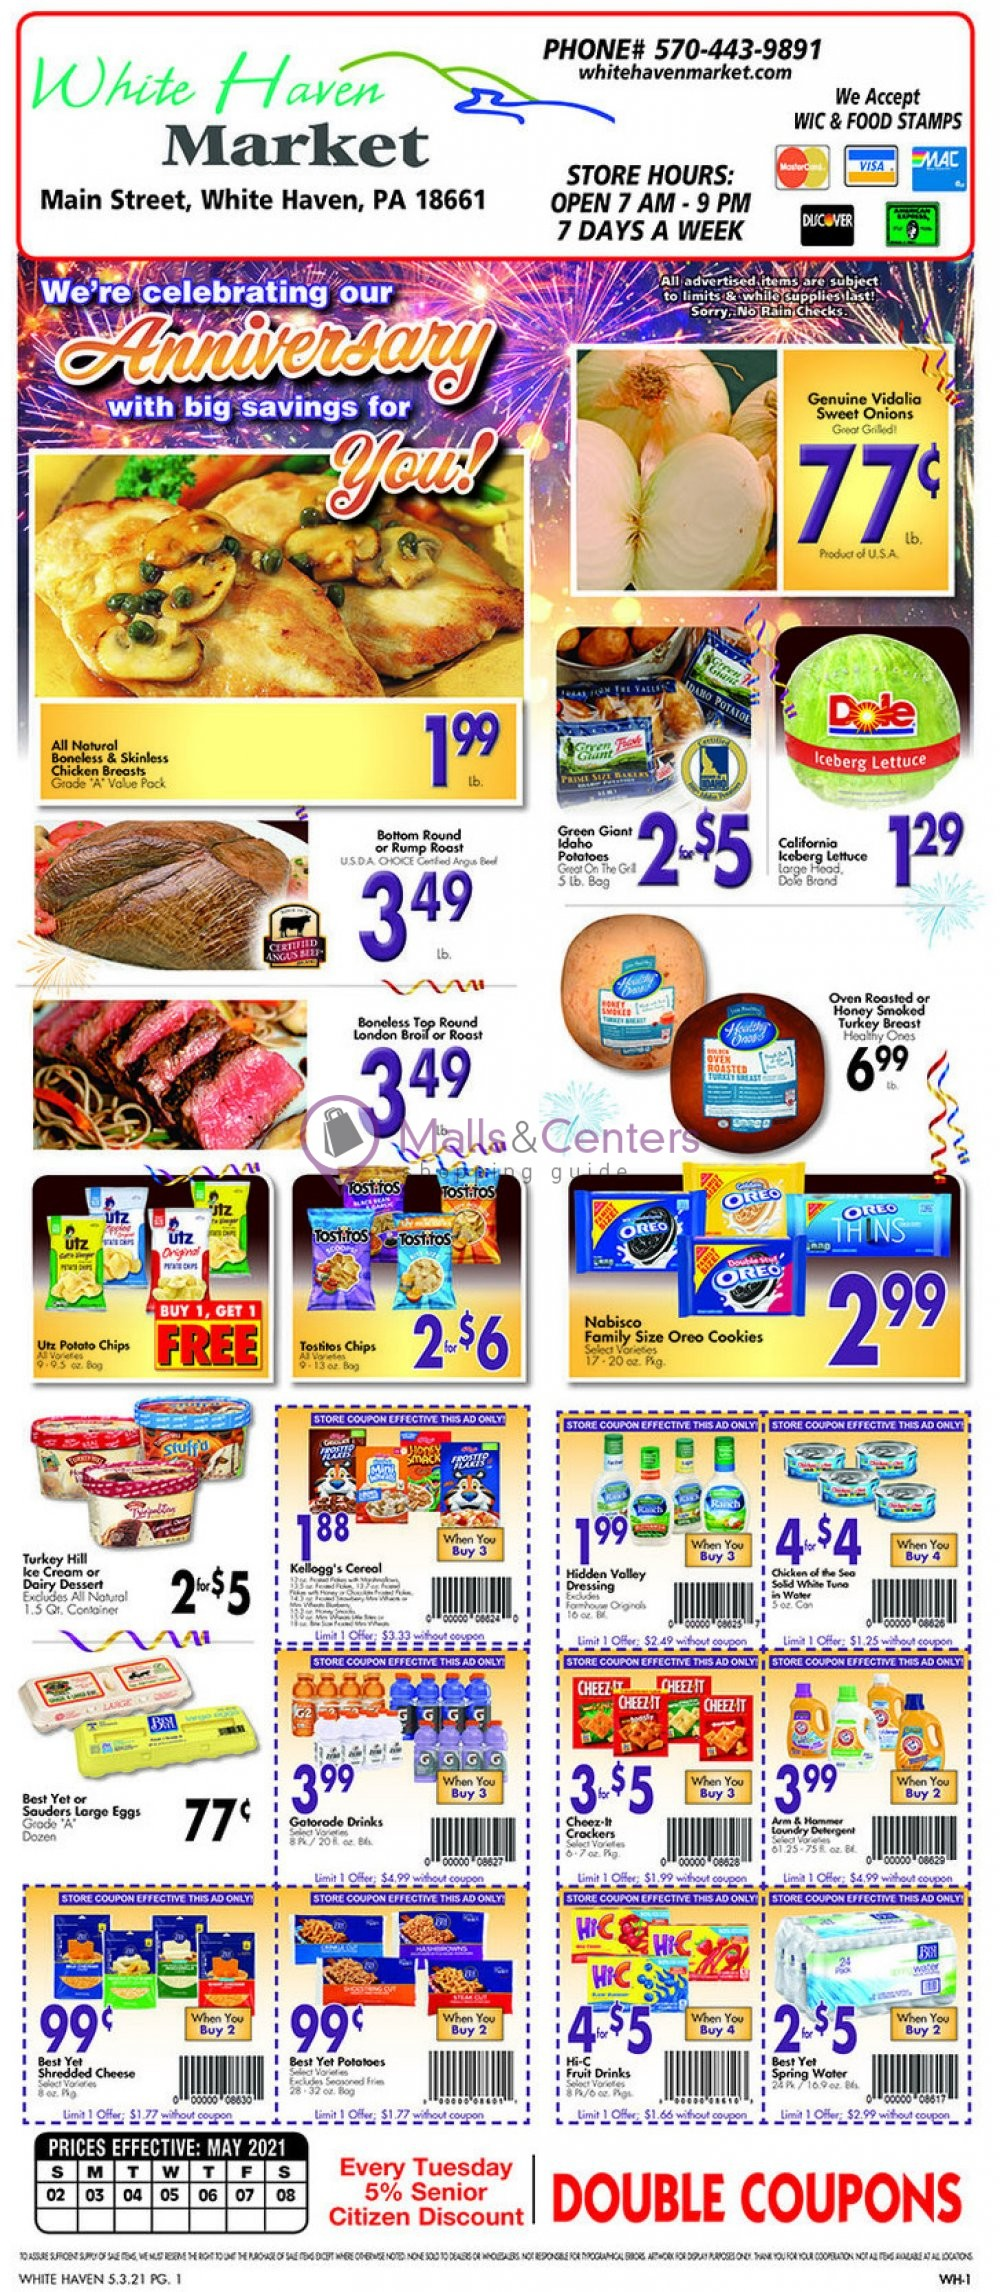 weekly ads White Haven Market - page 1 - mallscenters.com